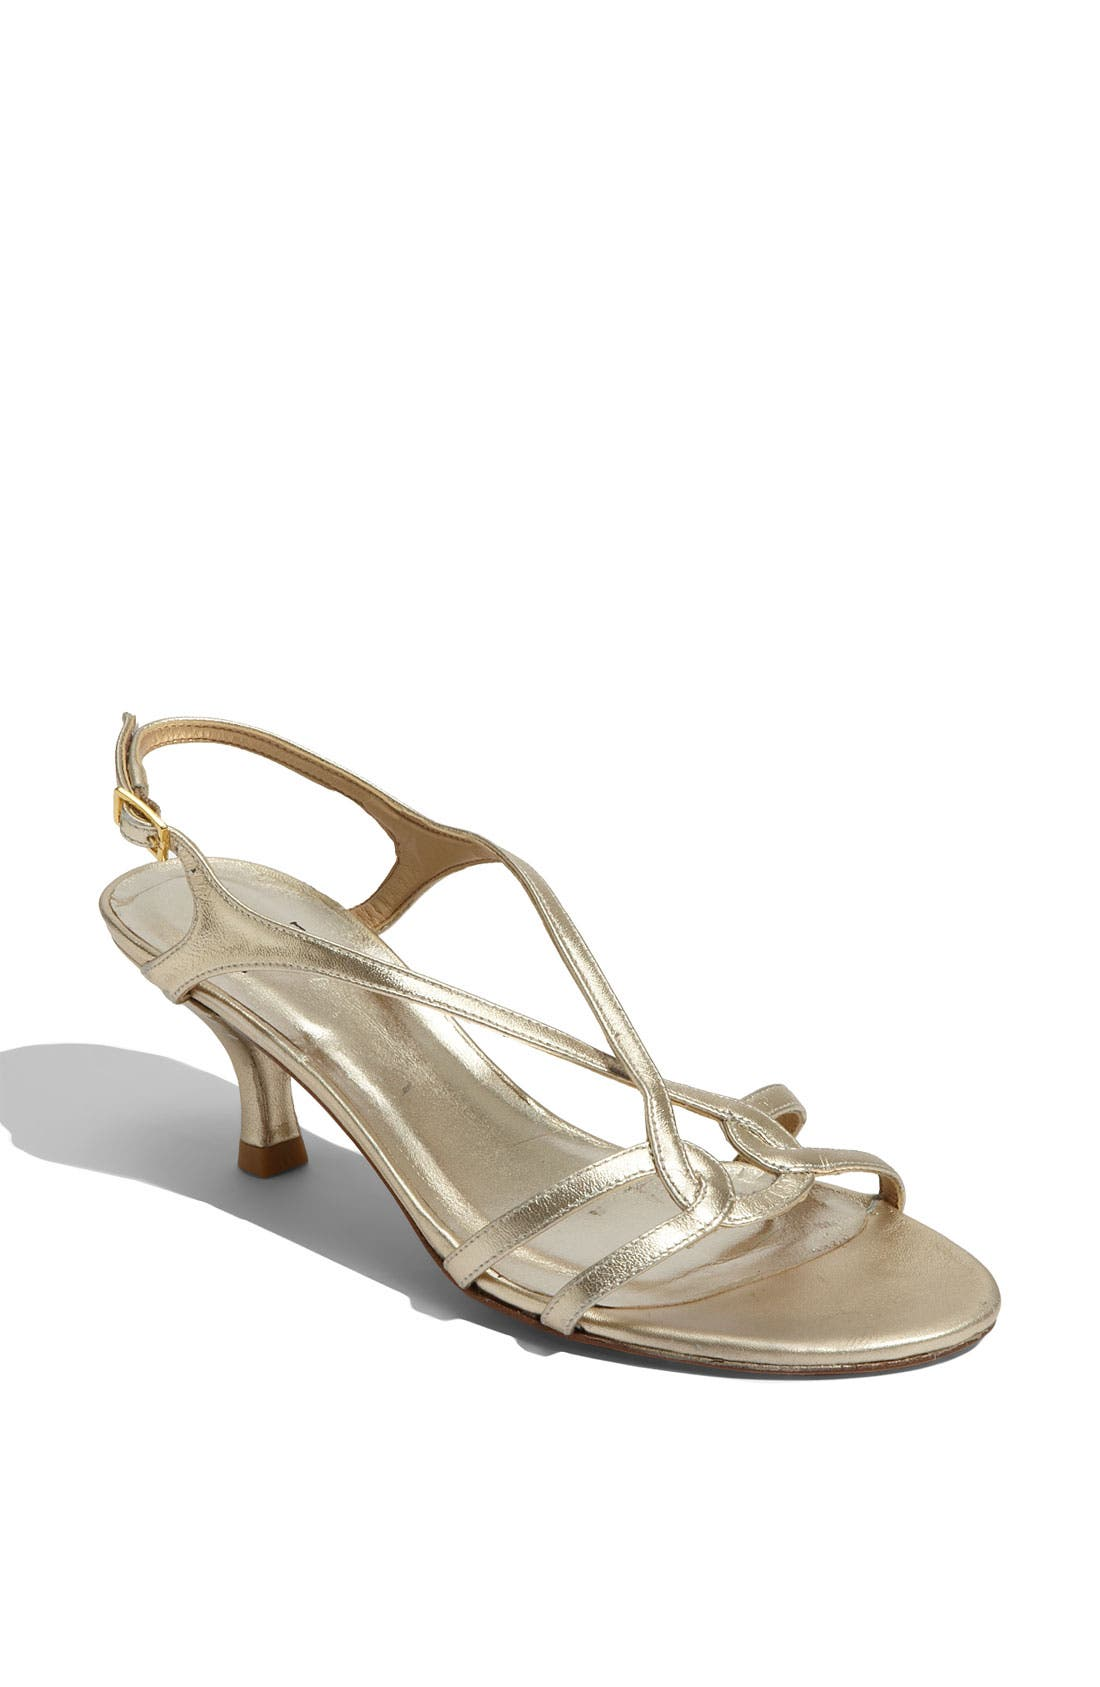 Alternate Image 1 Selected - Stuart Weitzman 'Reversal' Sandal